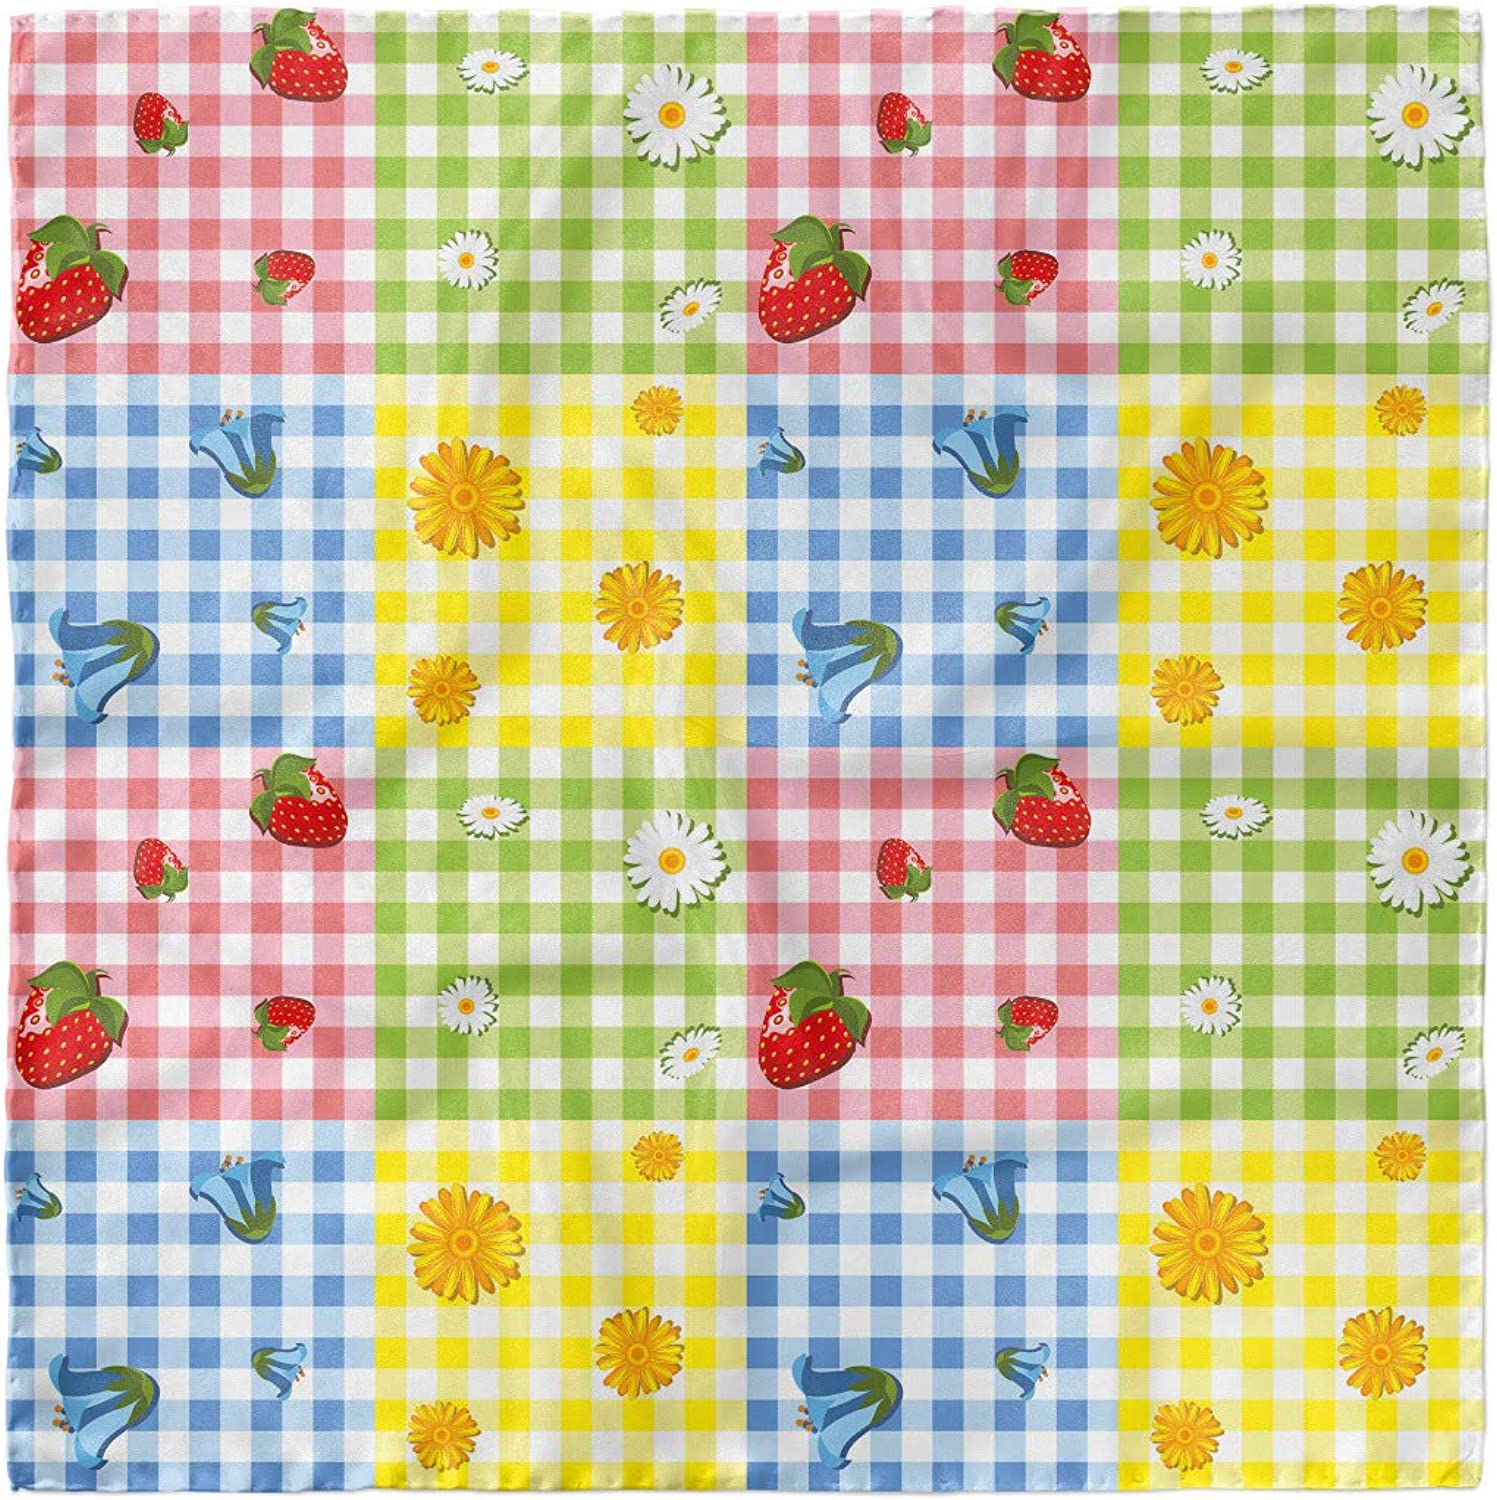 Berries Flowers Picnic Ambesonne Colorful Headscarf Hijab Scarf